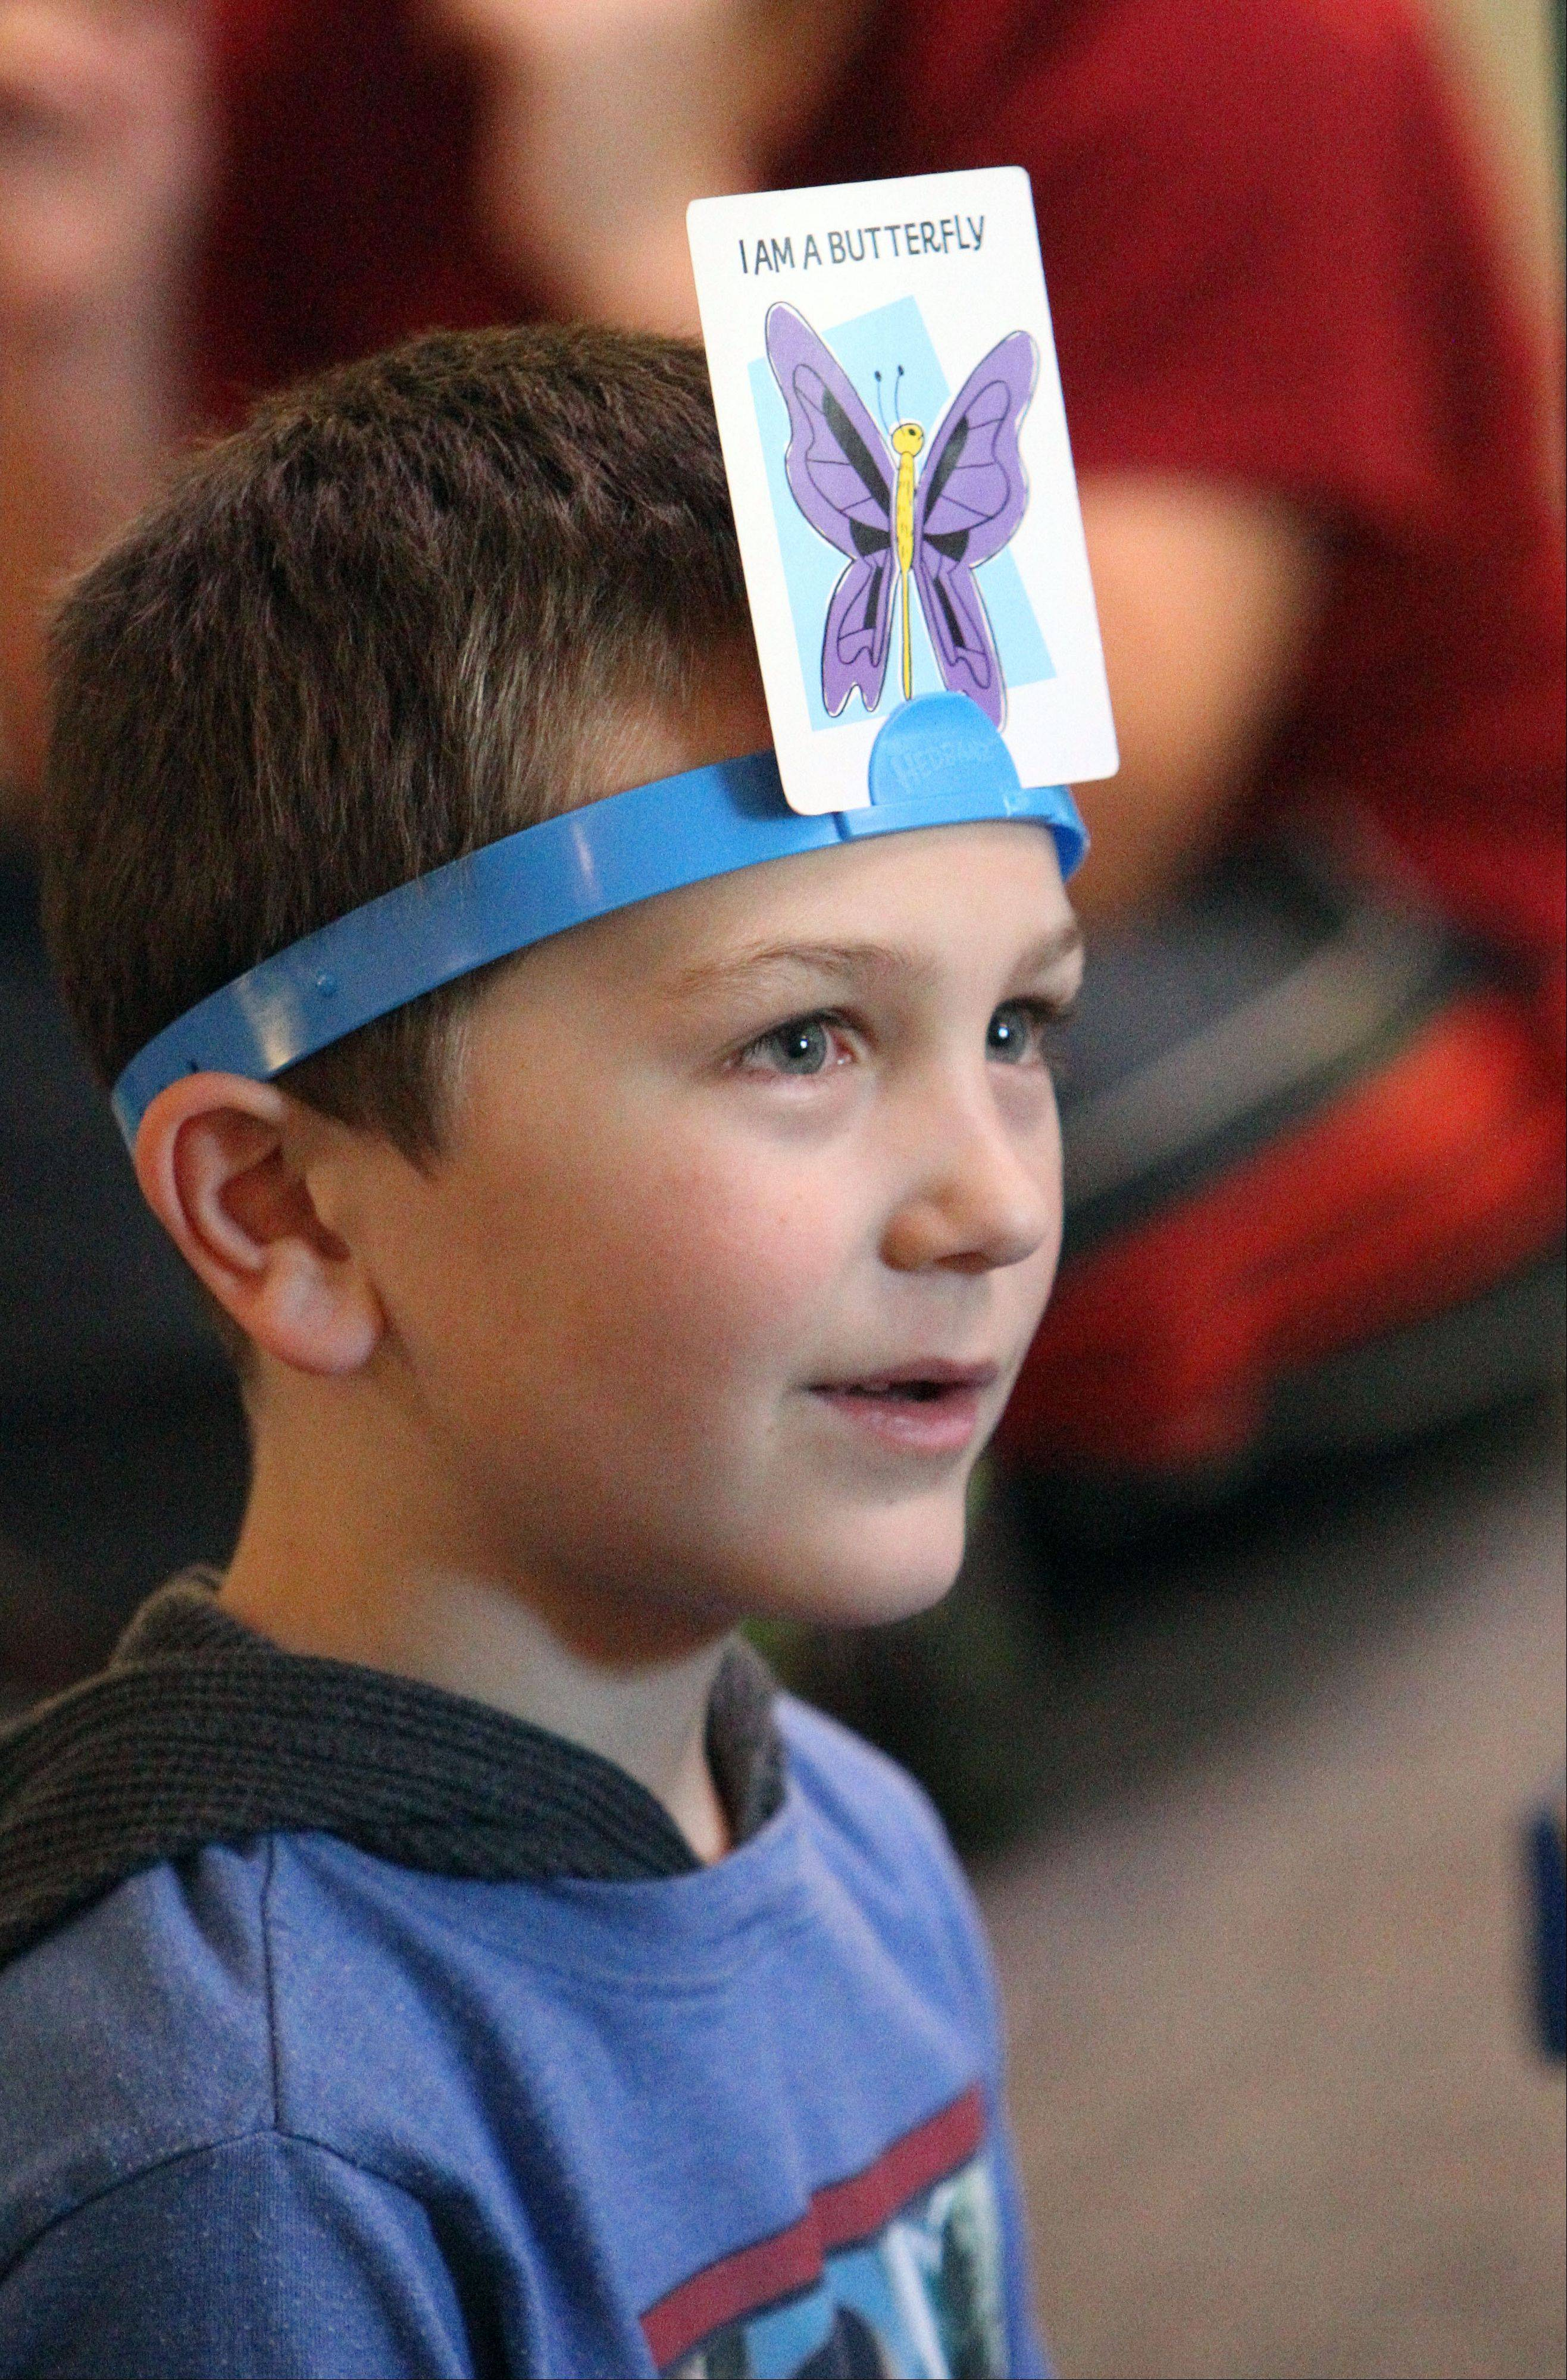 Eight-year-old Brayden Brafford, of Libertyville, plays Head Bandz during an after school program called Games Galore Monday at Rockland Elementary in Libertyville.